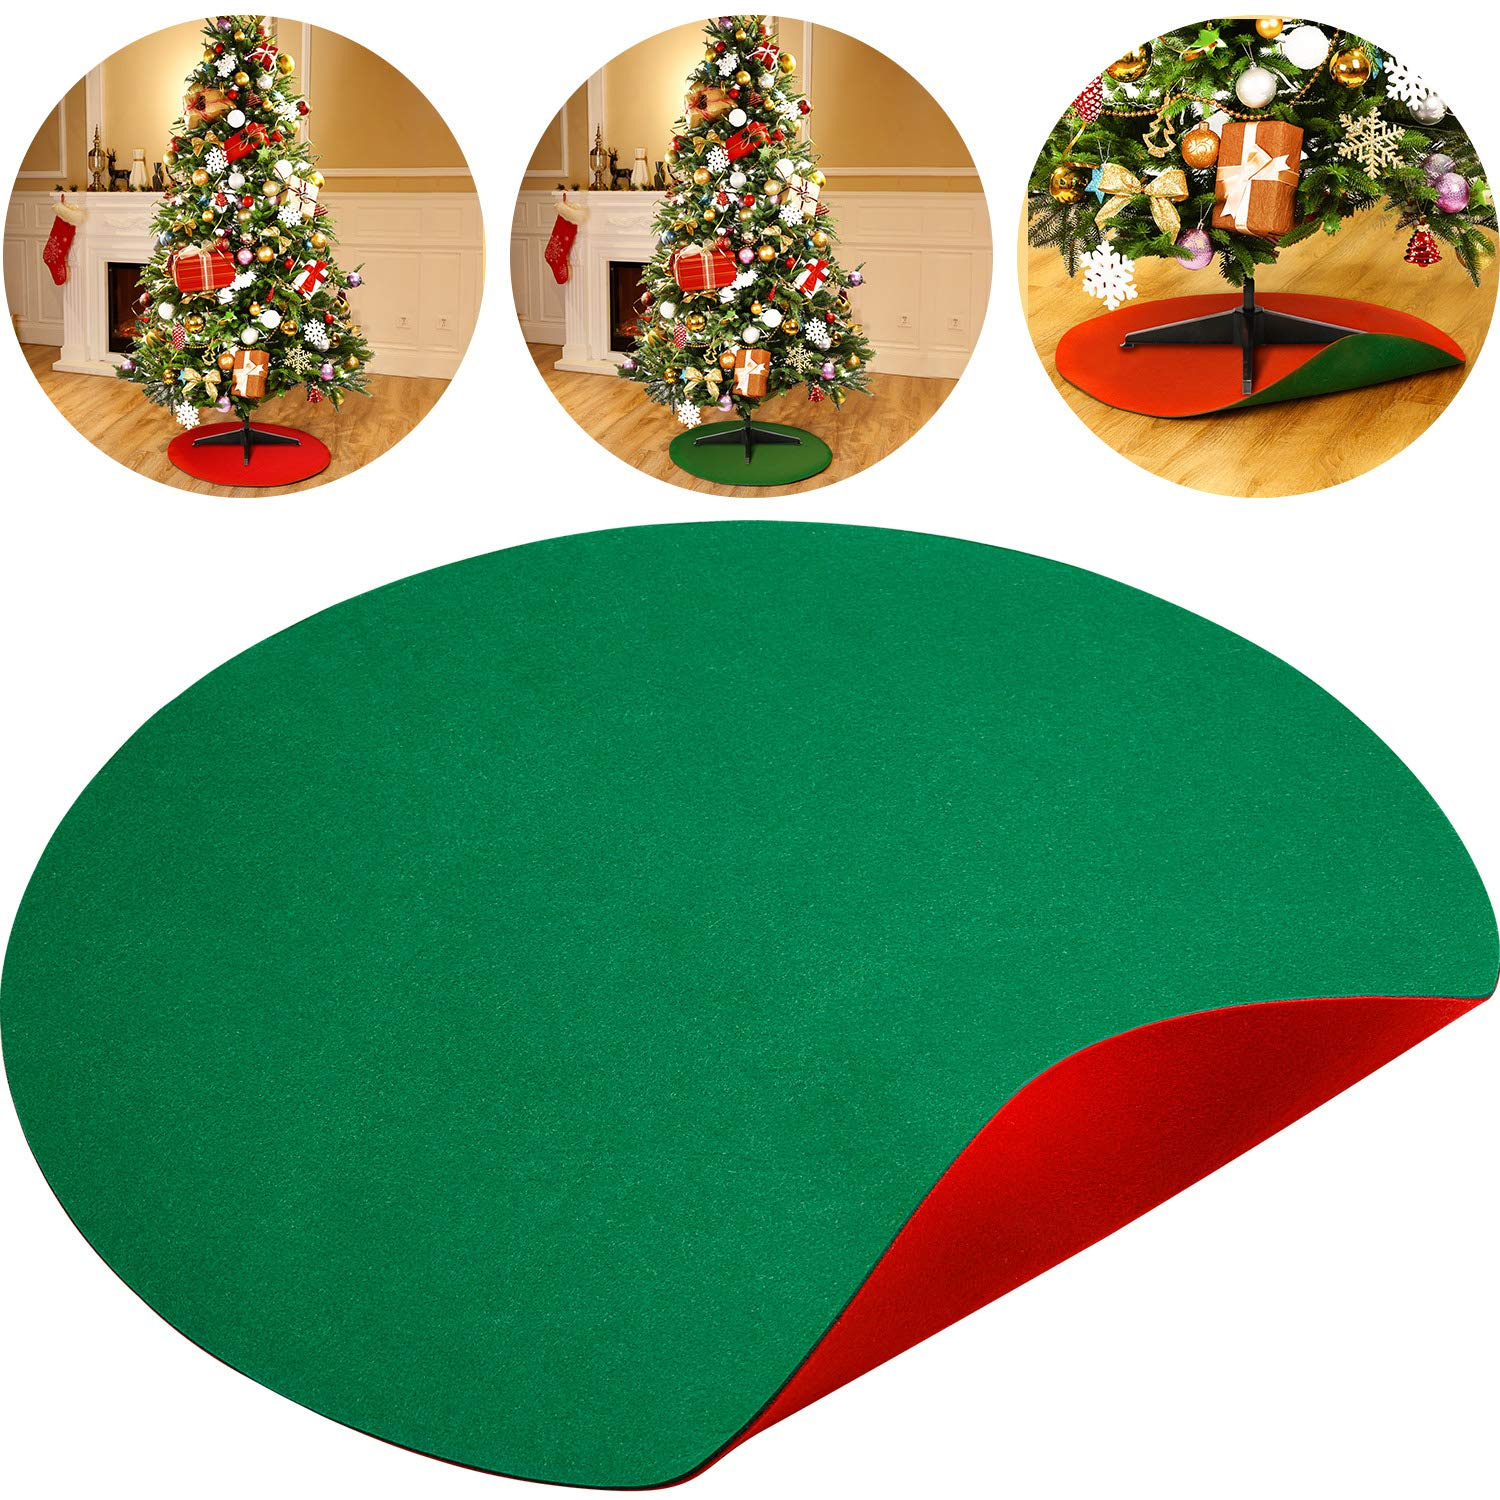 Christmas Tree Stand.Amazon Com Boao 30 Inch Reversible Christmas Tree Stand Mat